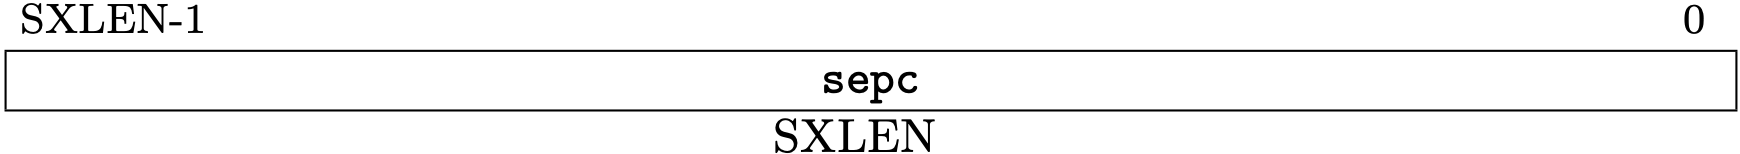 Fig 3.14 sepc register (Source: Figure 4.10: Supervisor exception program counter register. in Volume II: Privileged Architecture)